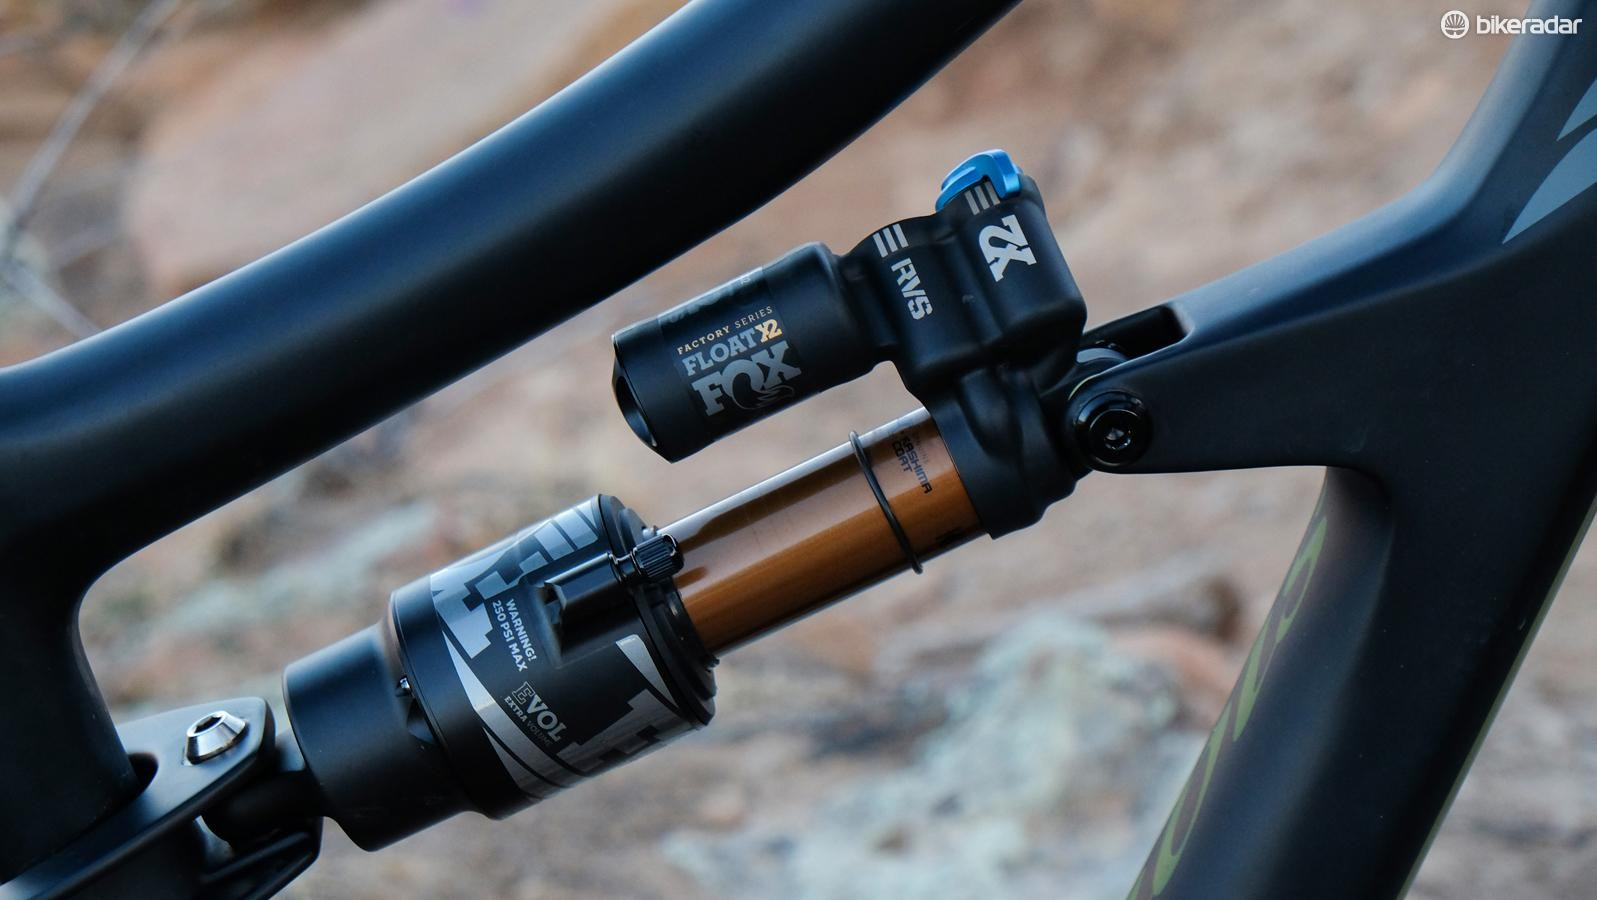 The Fox Float X2 is an optional upgrade over the Float DPX2